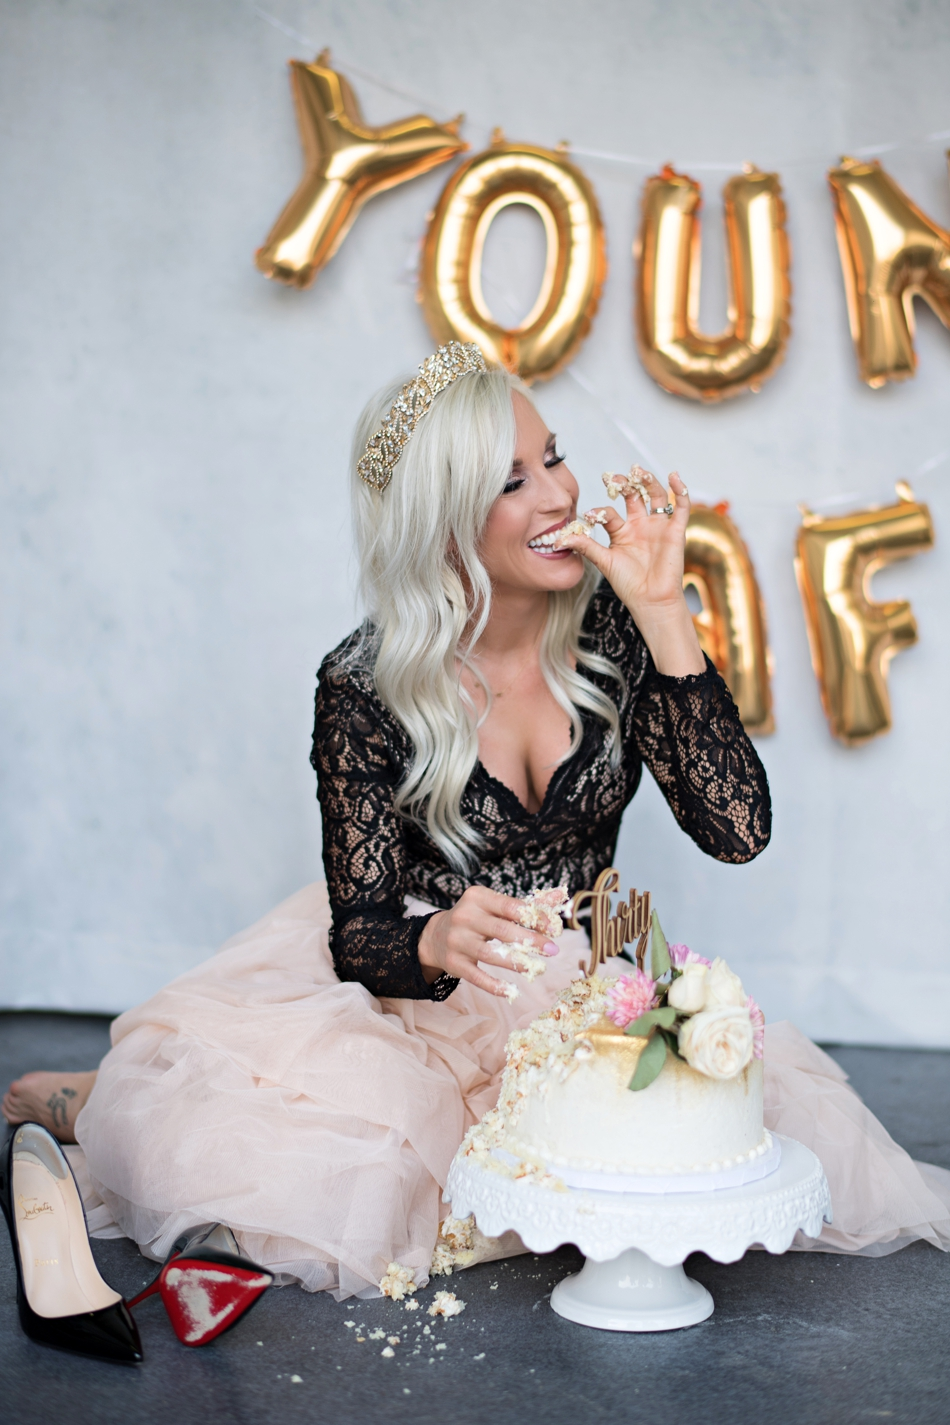 30th Birthday Cake Smash - Orlando Wedding Photographer ...